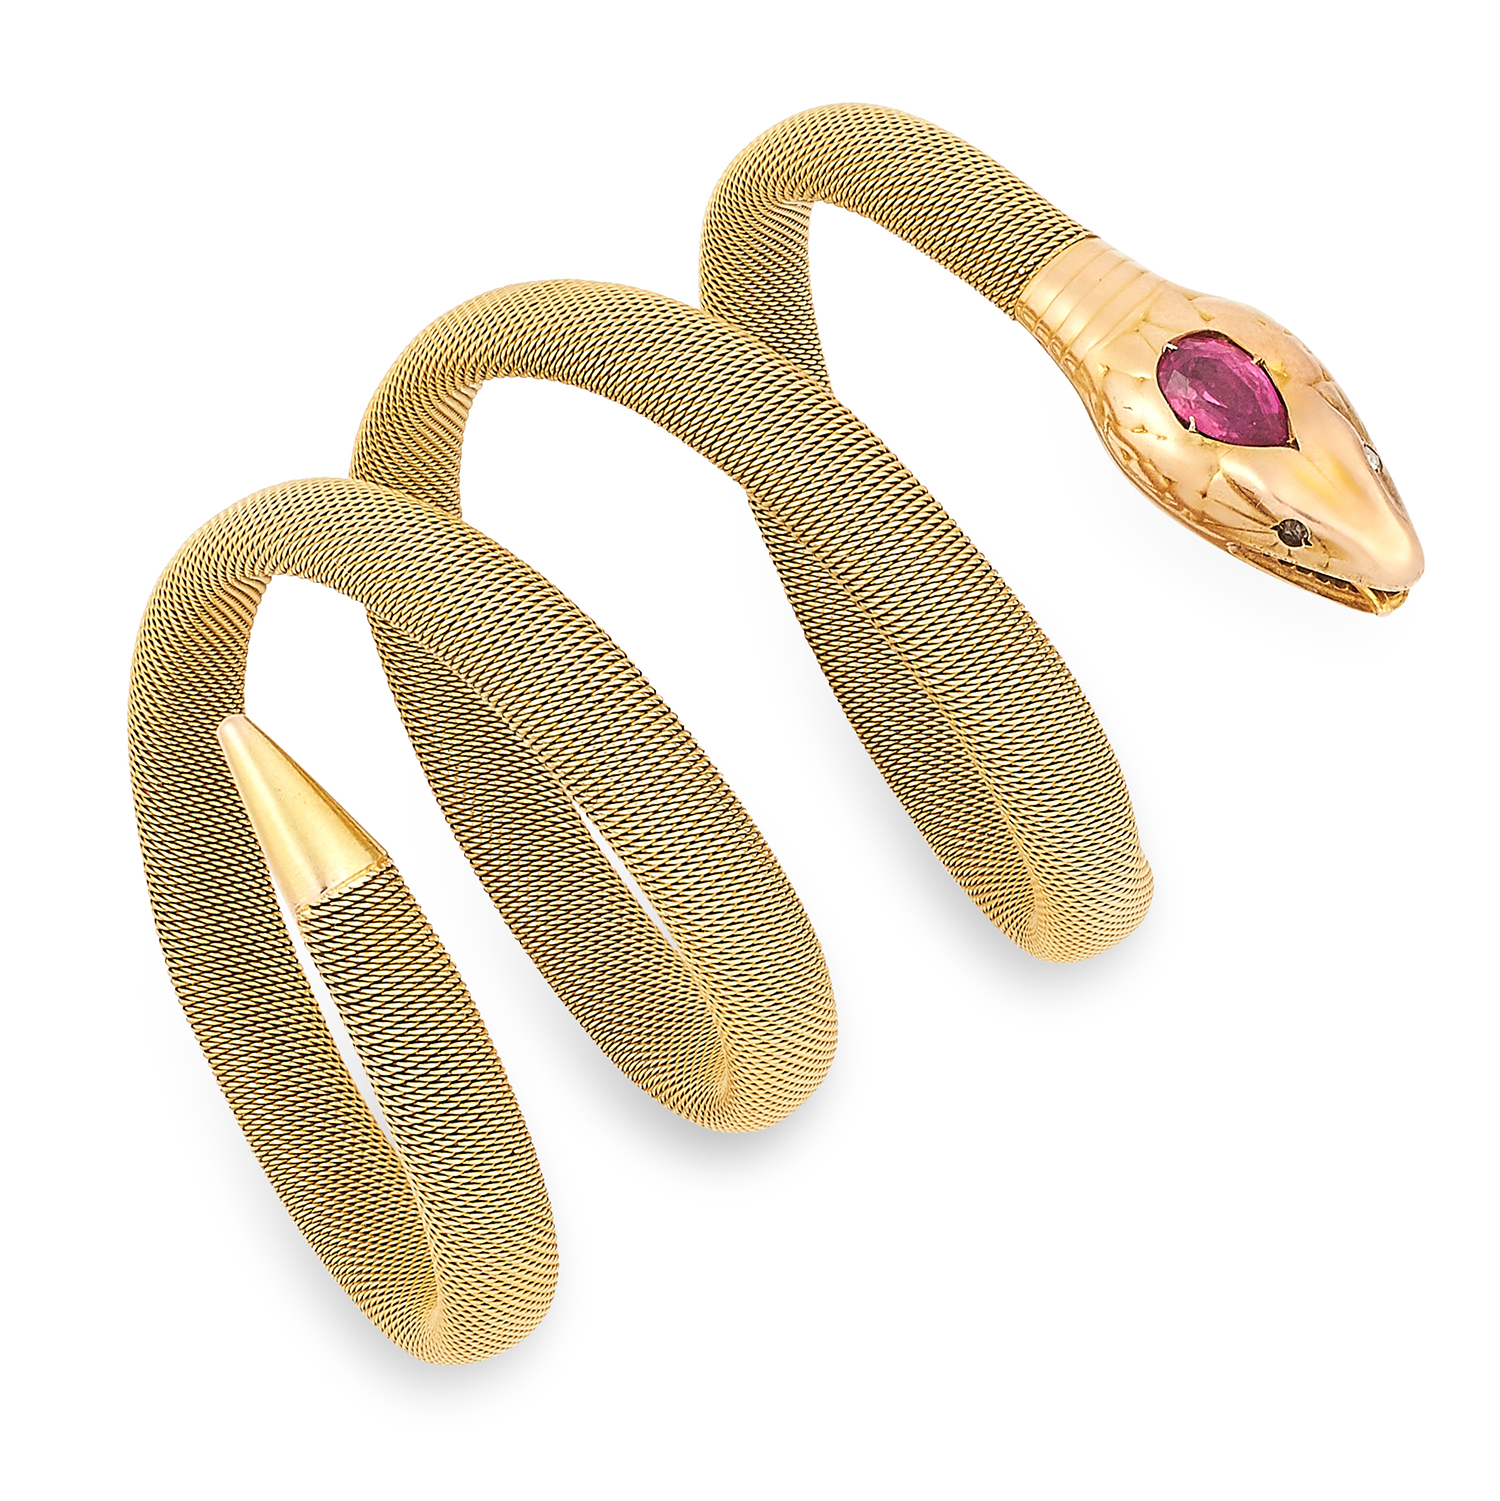 Los 9 - RUBY AND DIAMOND SNAKE BANGLE set with a pear cut ruby and rose cut diamonds, 32.7g.